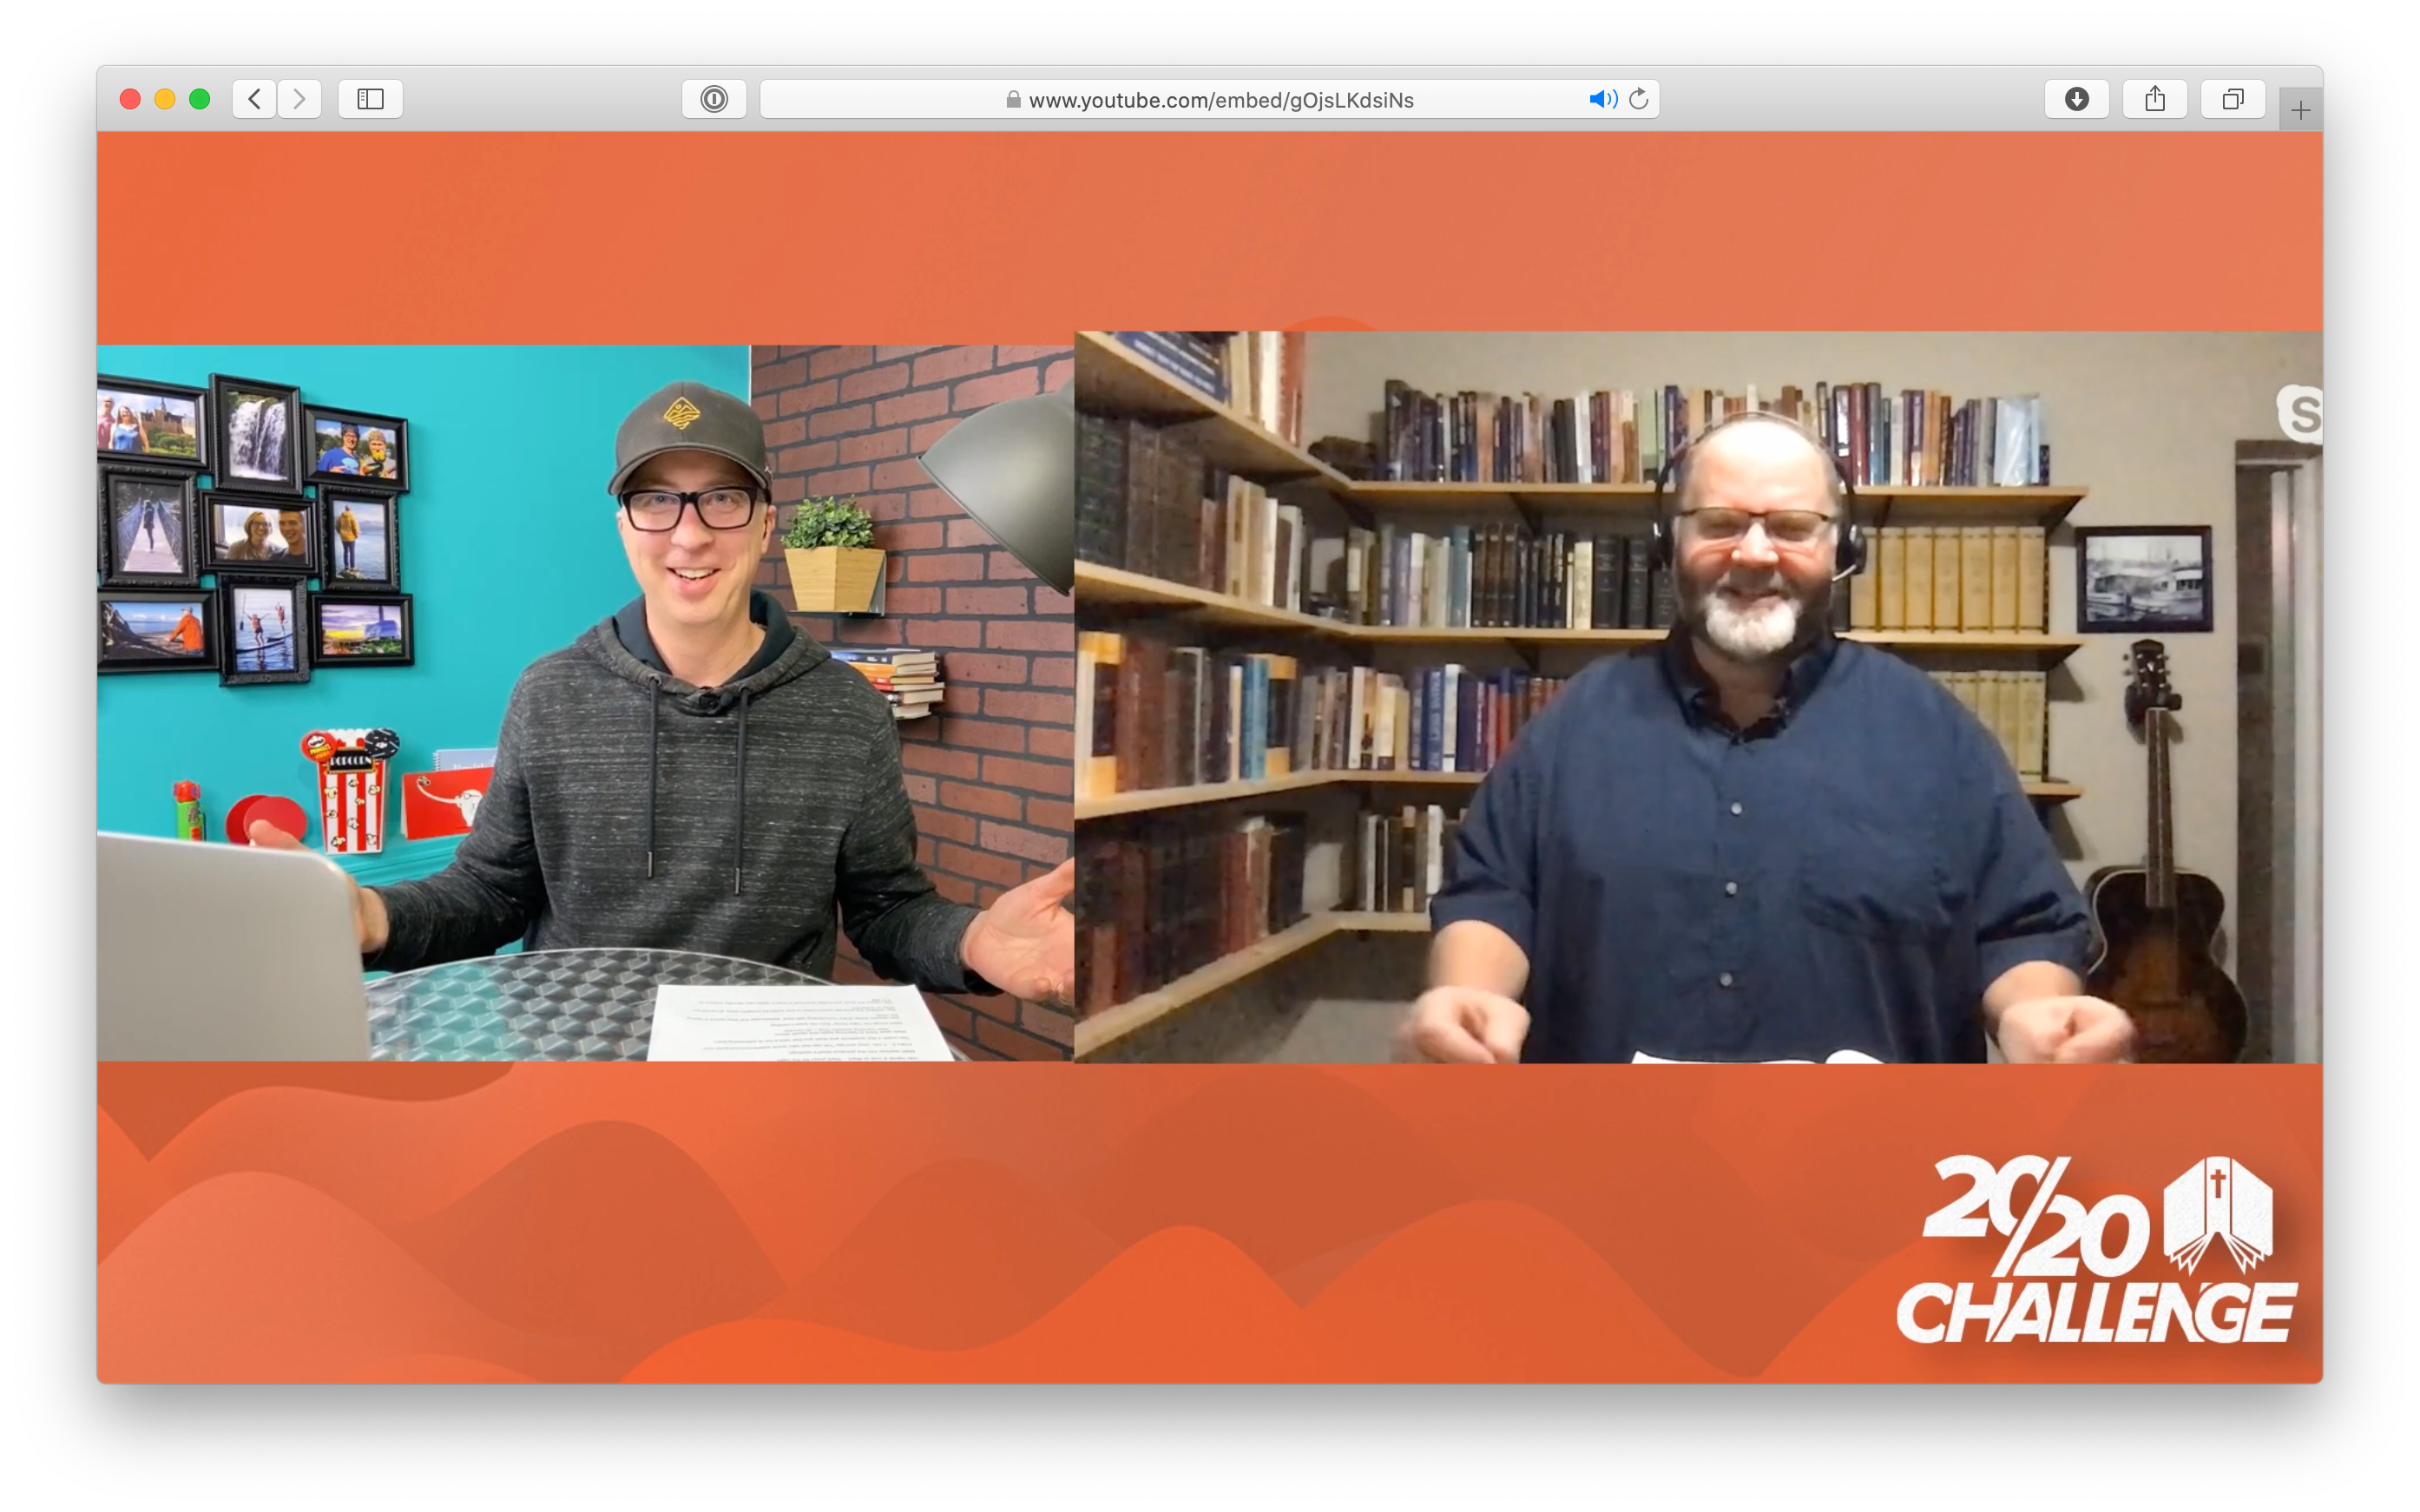 2020 Challenge Live Teachings (Every Monday)